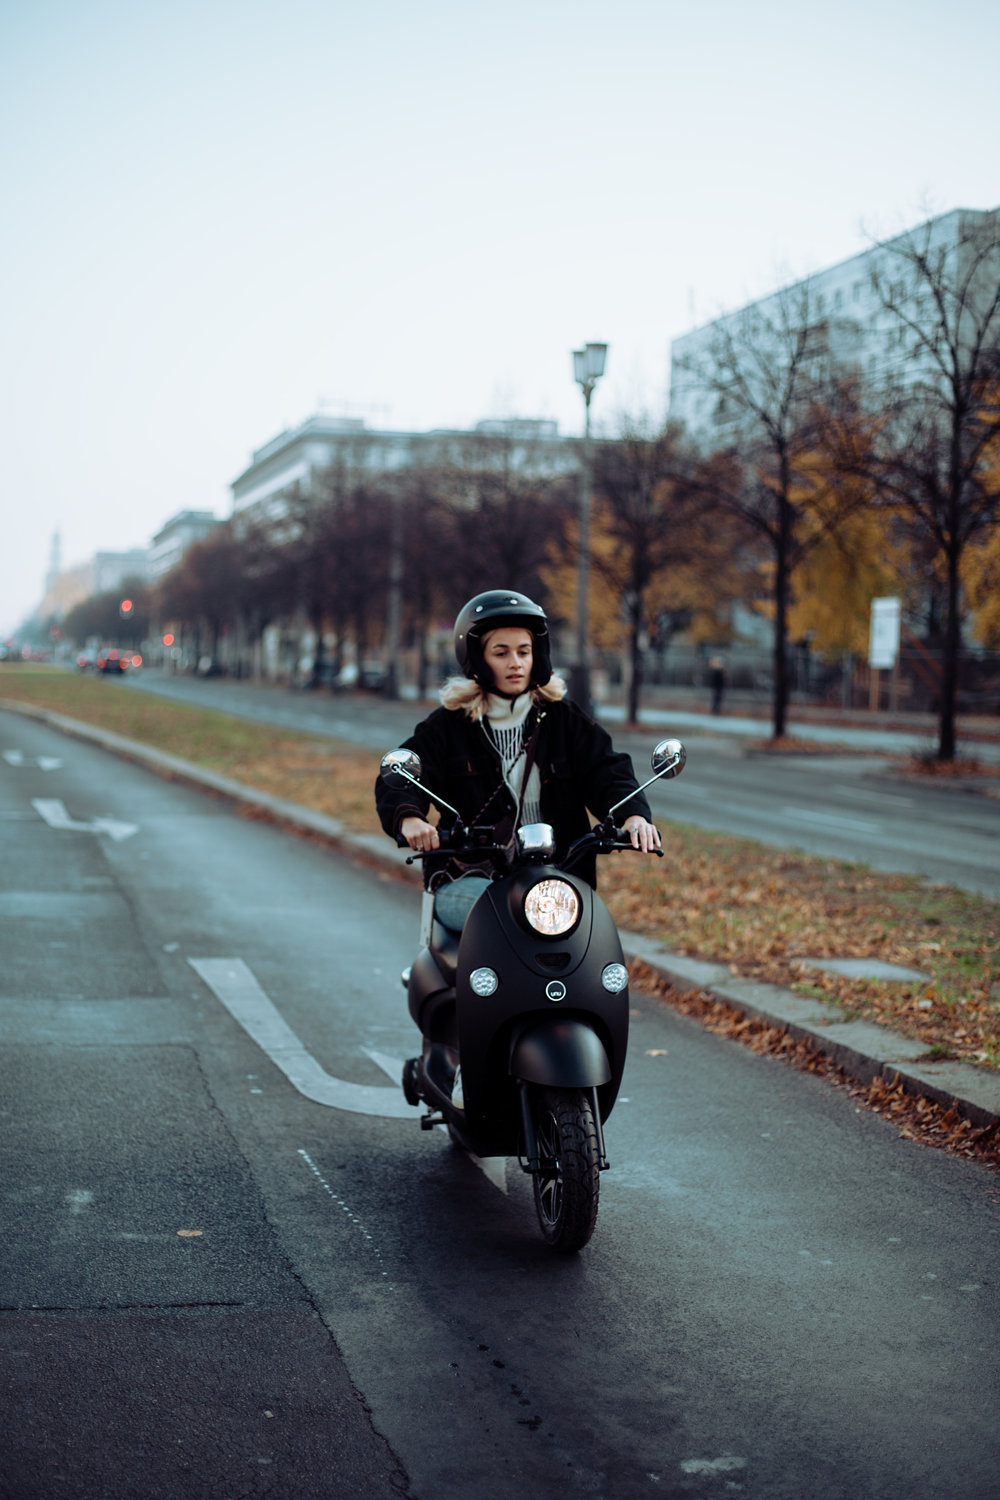 move-forward-unu-scooter-mogli-06.jpg